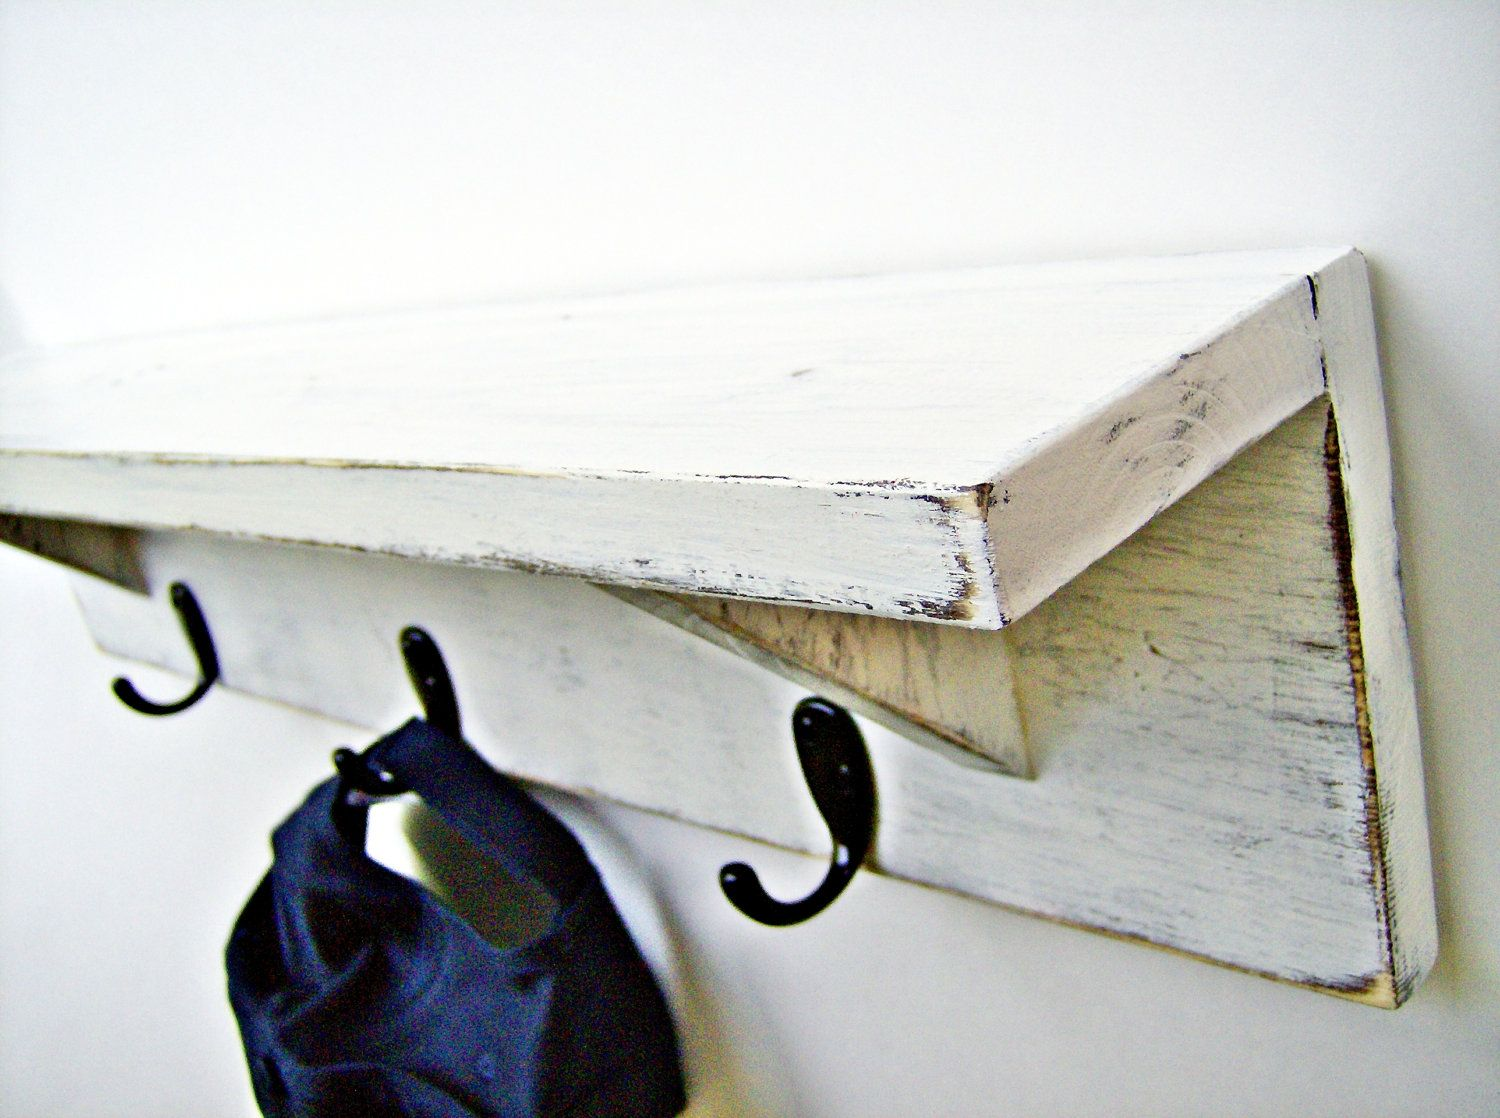 Antique White Wood Wall Shelf With Hooks 24 Inch Rustic Coat Hanger Rack Shabby Chic Finish 29 95 Via E Wall Shelf With Hooks Coat Rack Wall Wood Wall Shelf